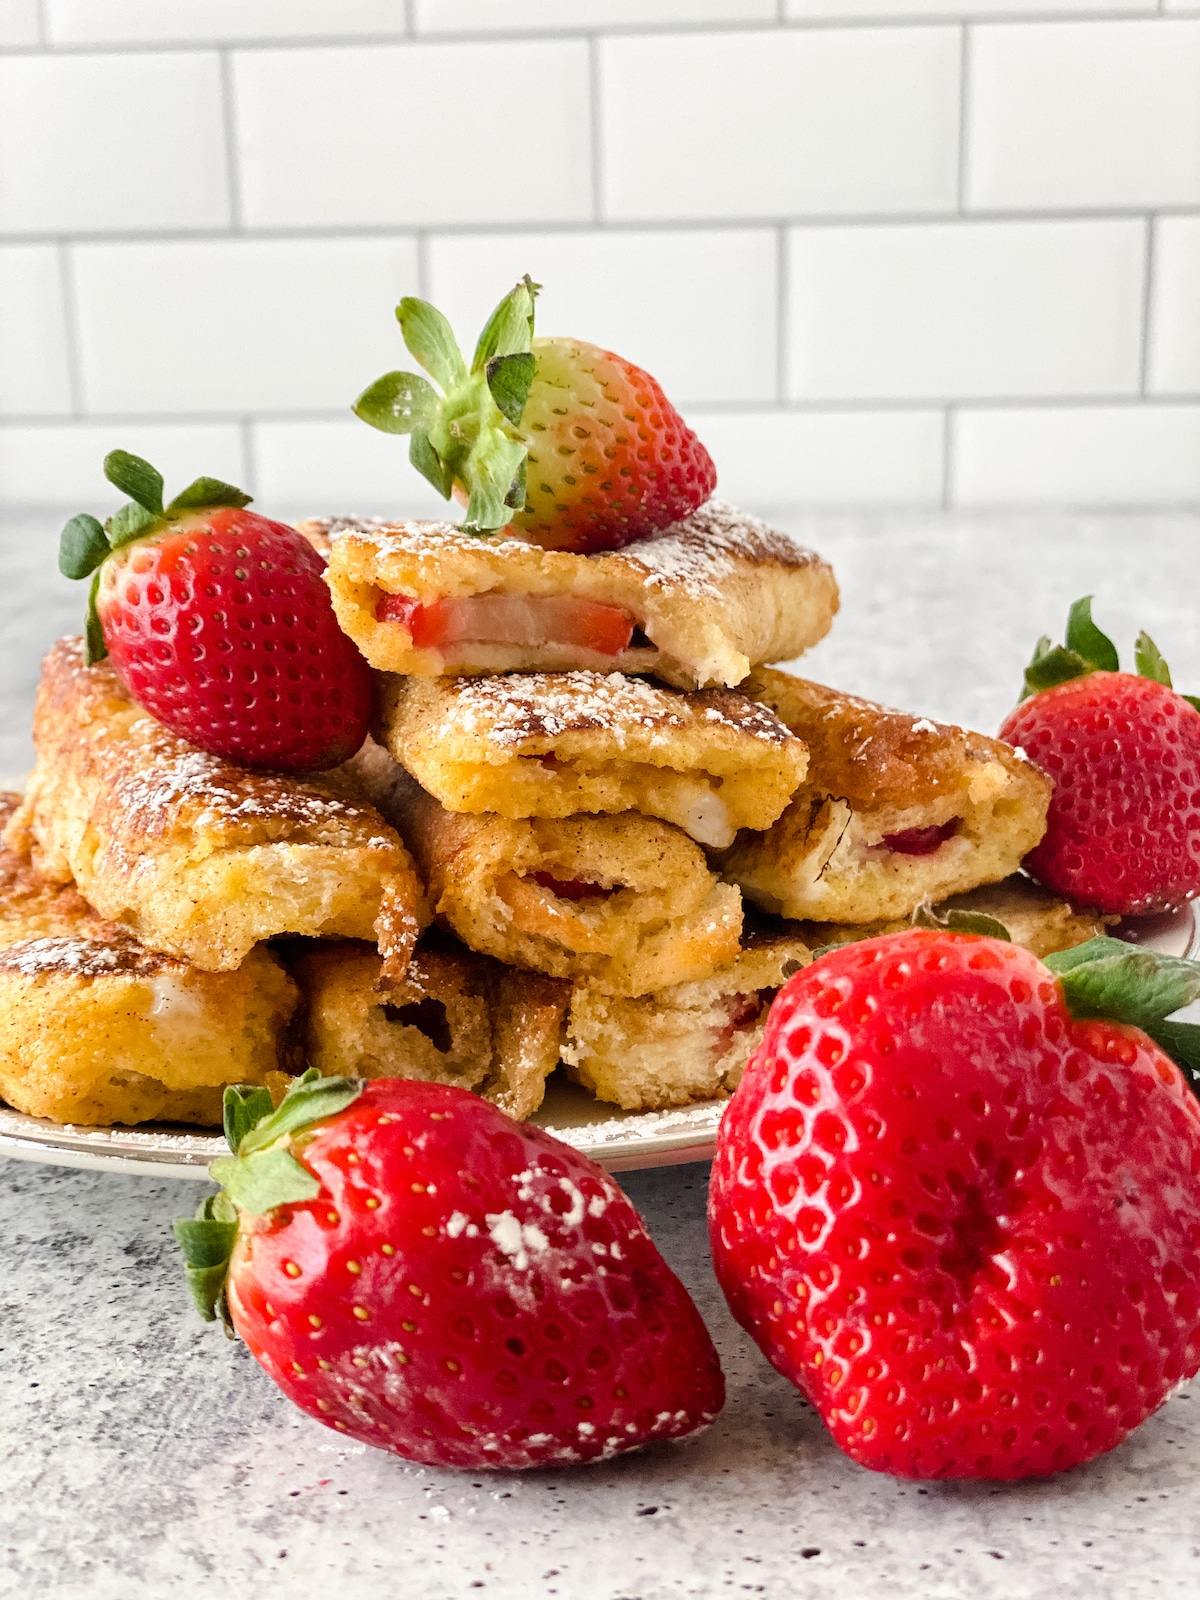 Stack of strawberry french toast on white plate with berries in front of plate